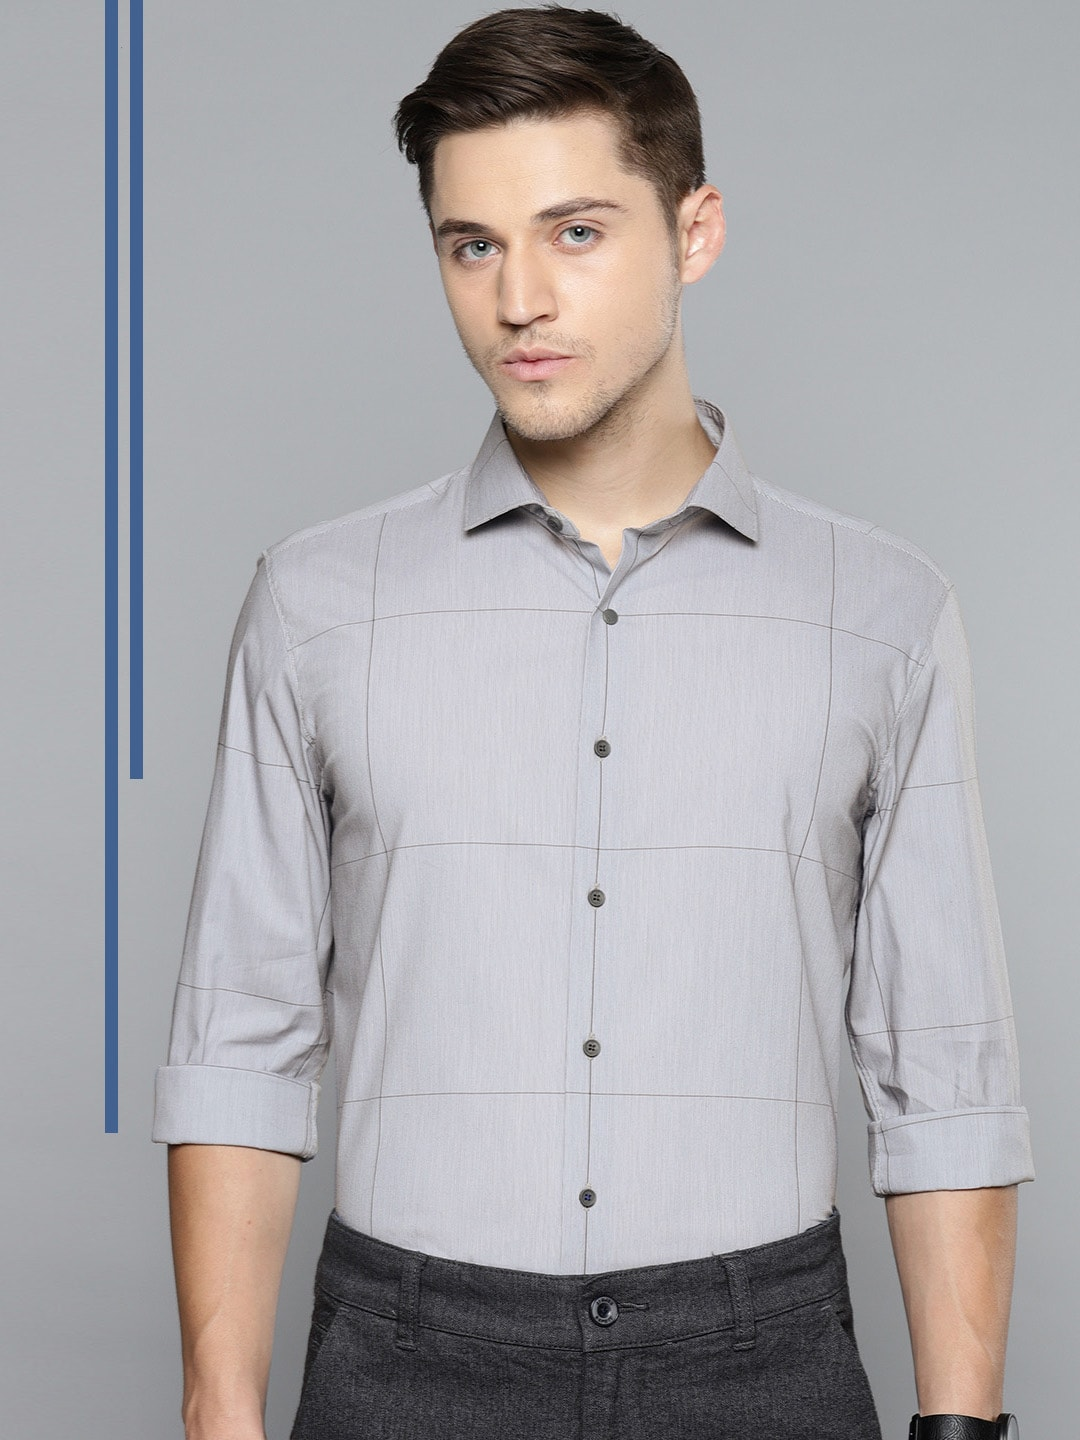 2945fa2cc644 Super Slim Fit Shirts - Buy Super Slim Fit Shirts online in India